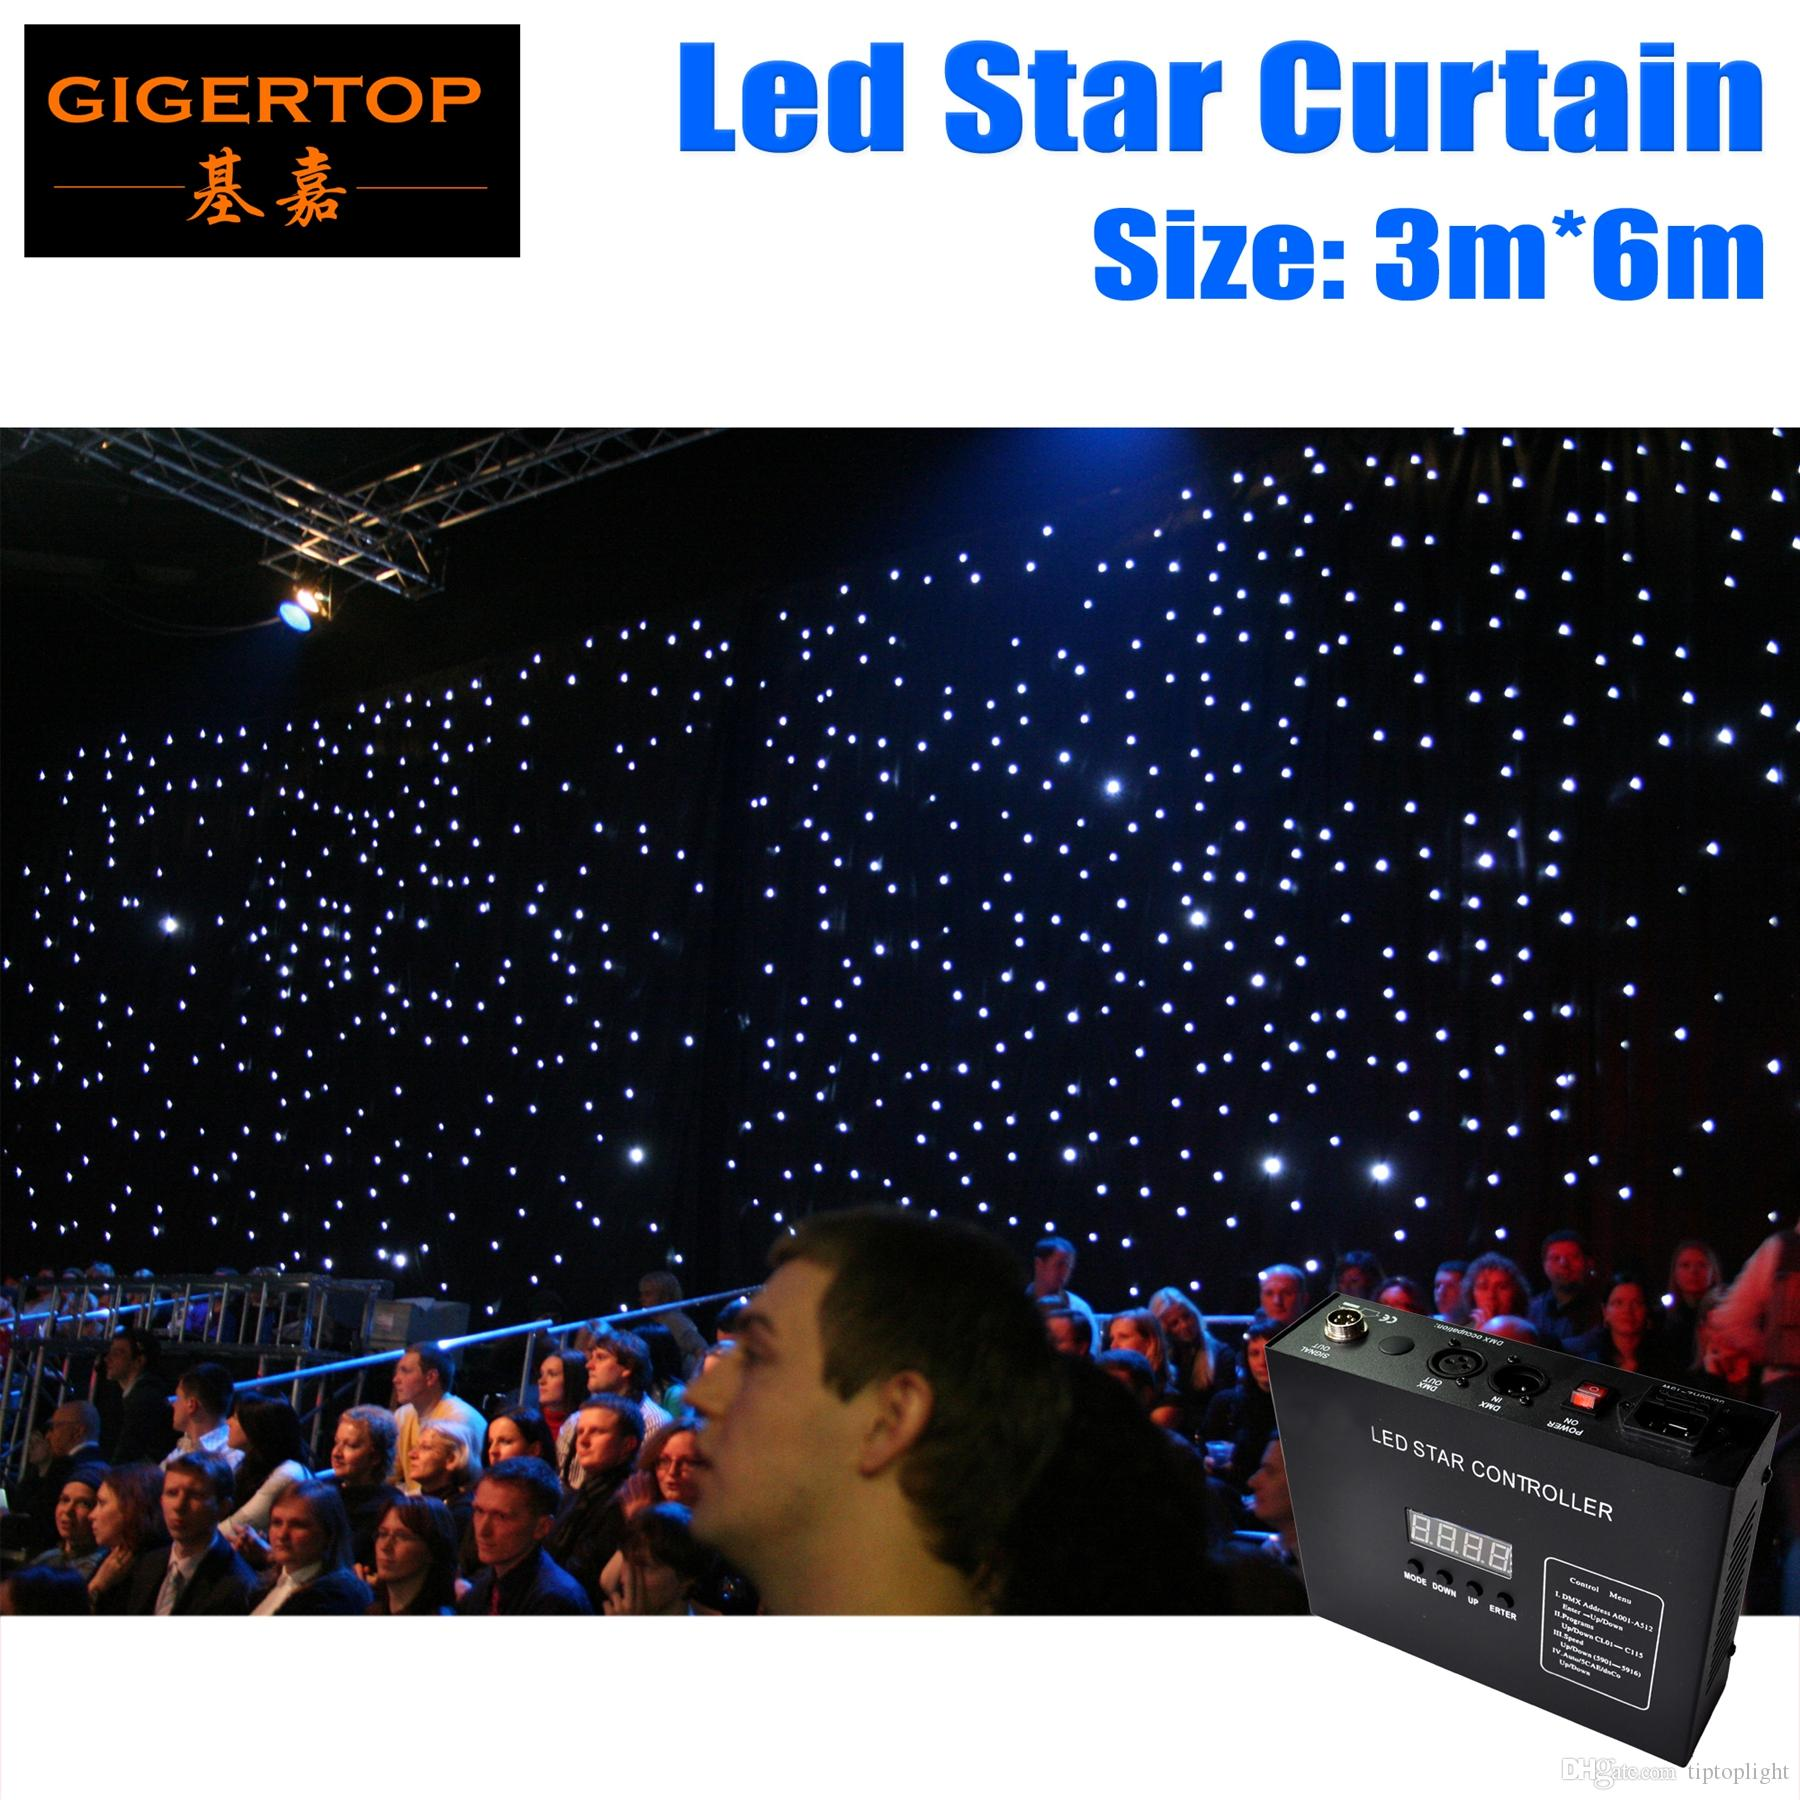 Color booth online - 3m 6m Led Star Curtain Rgbw Led Color Curtain Dj Skirt Dj Booth Dmx Controller Control Auto Sound Mode Flam Retardant Light Dj Led Par Lights From